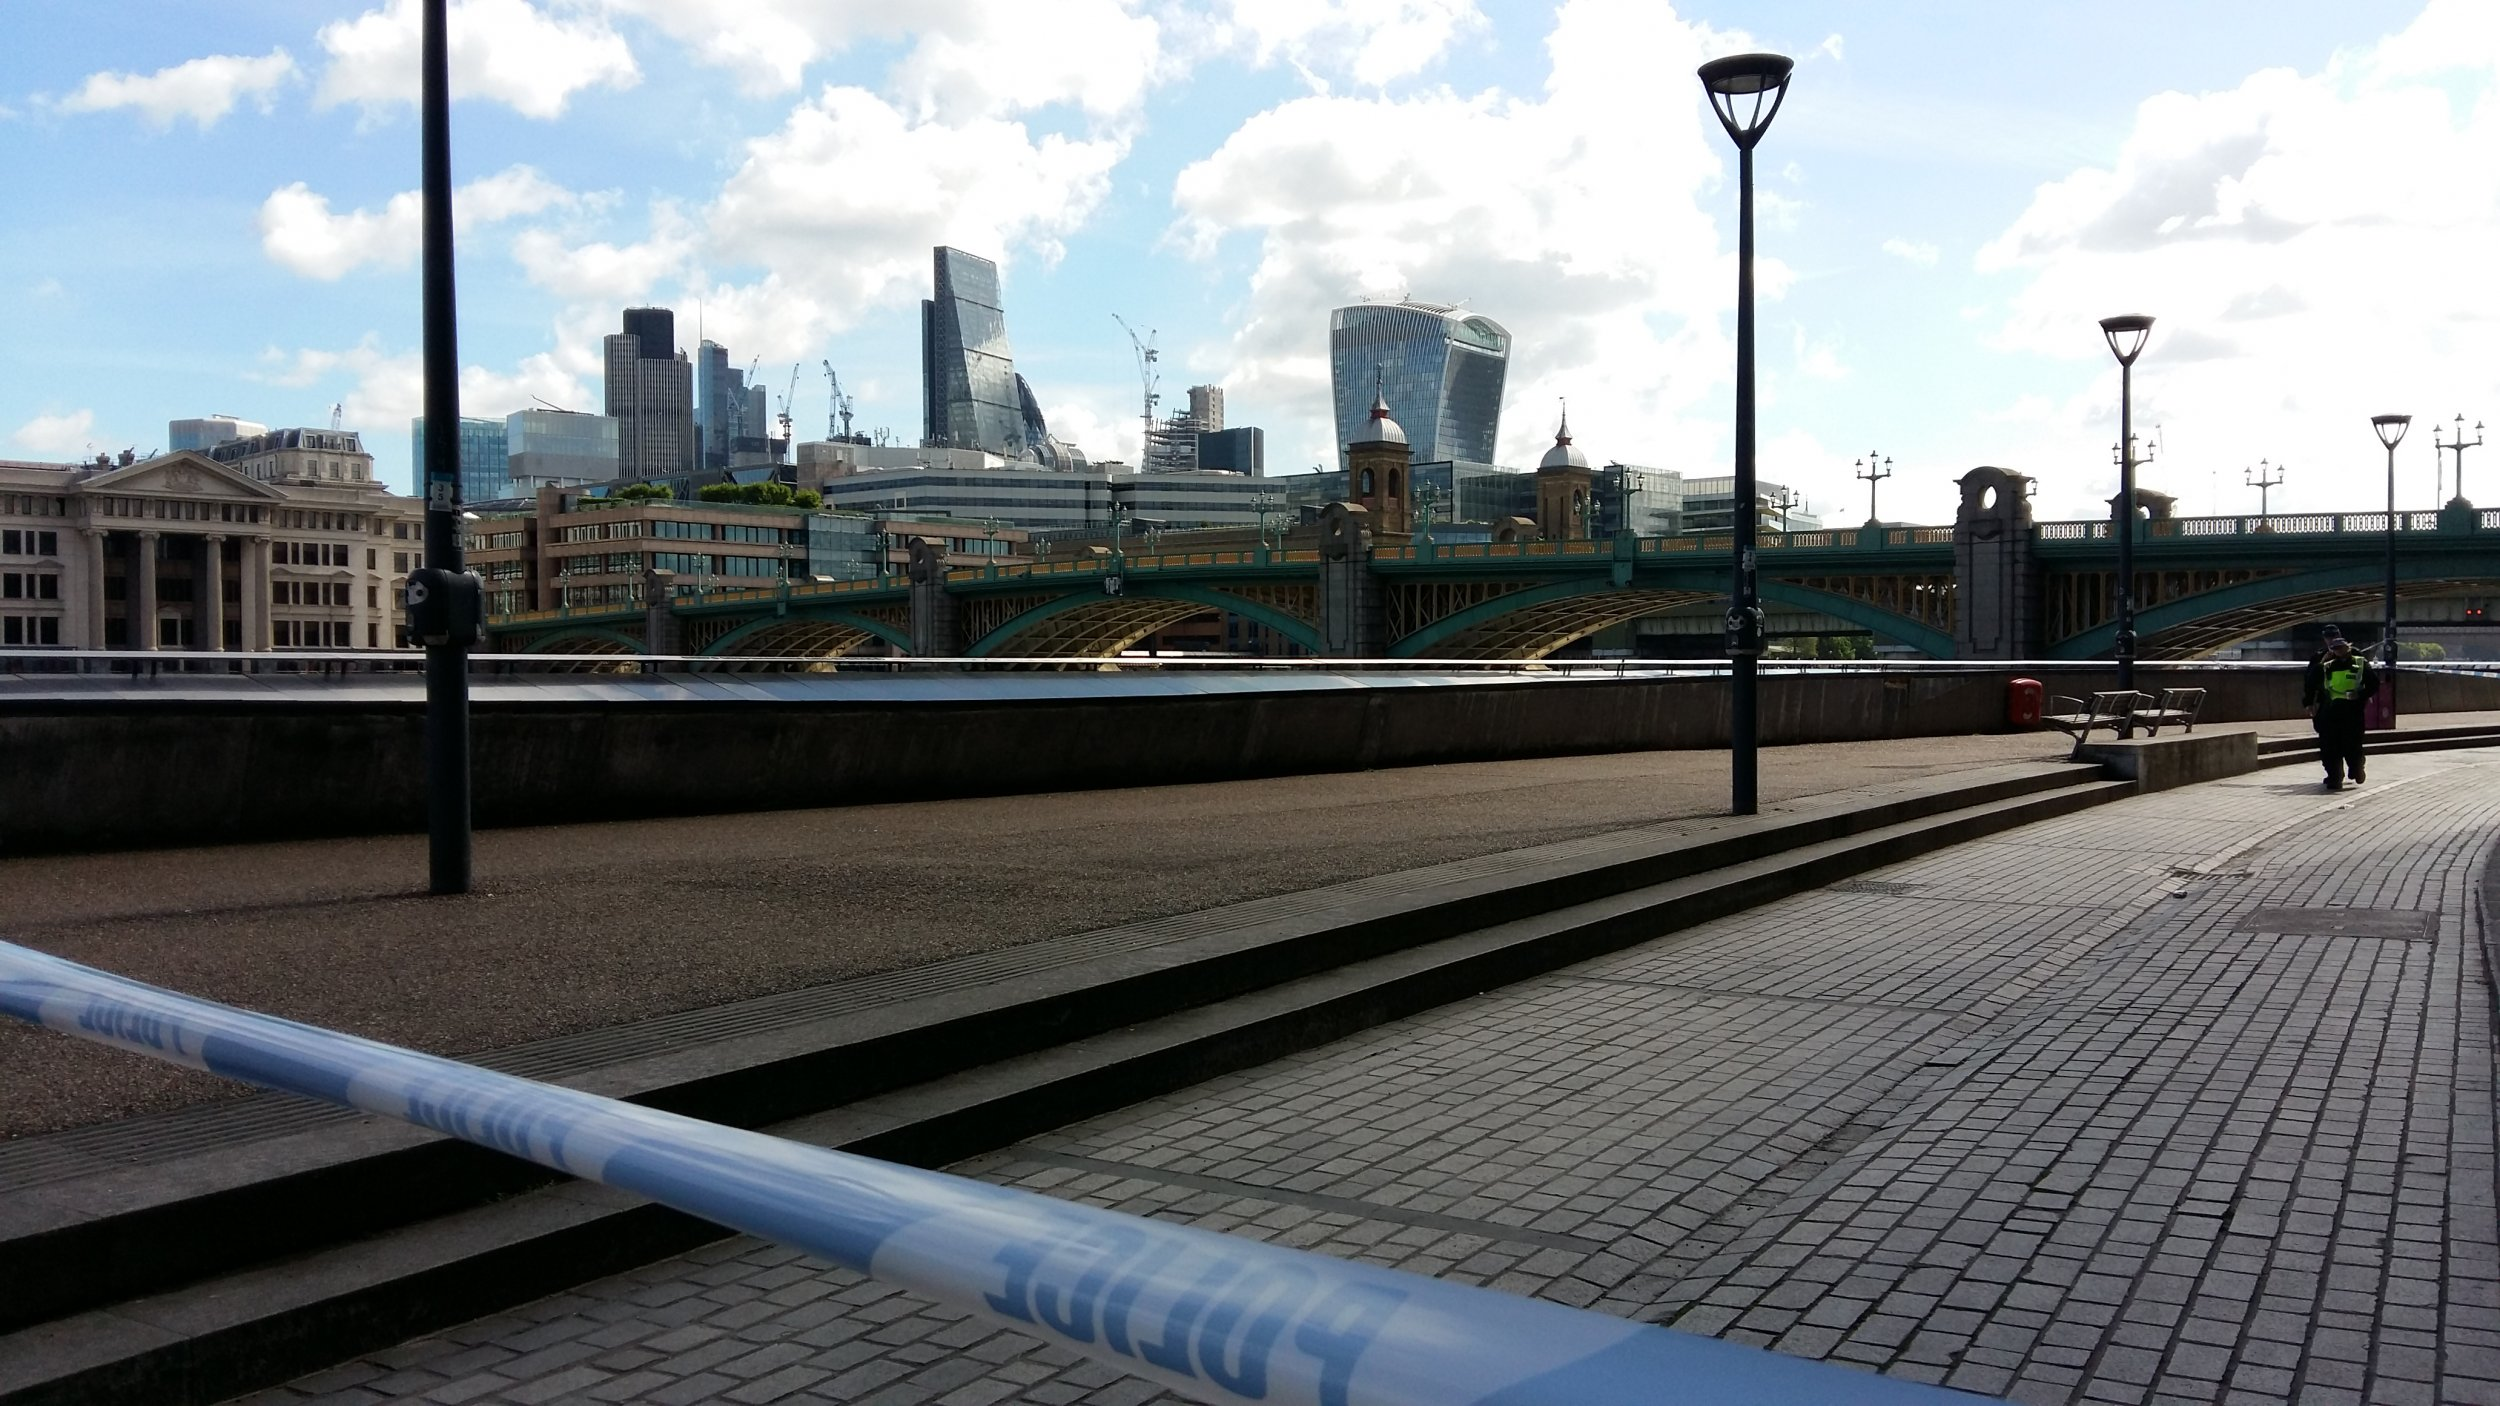 London Bridge cordoned off